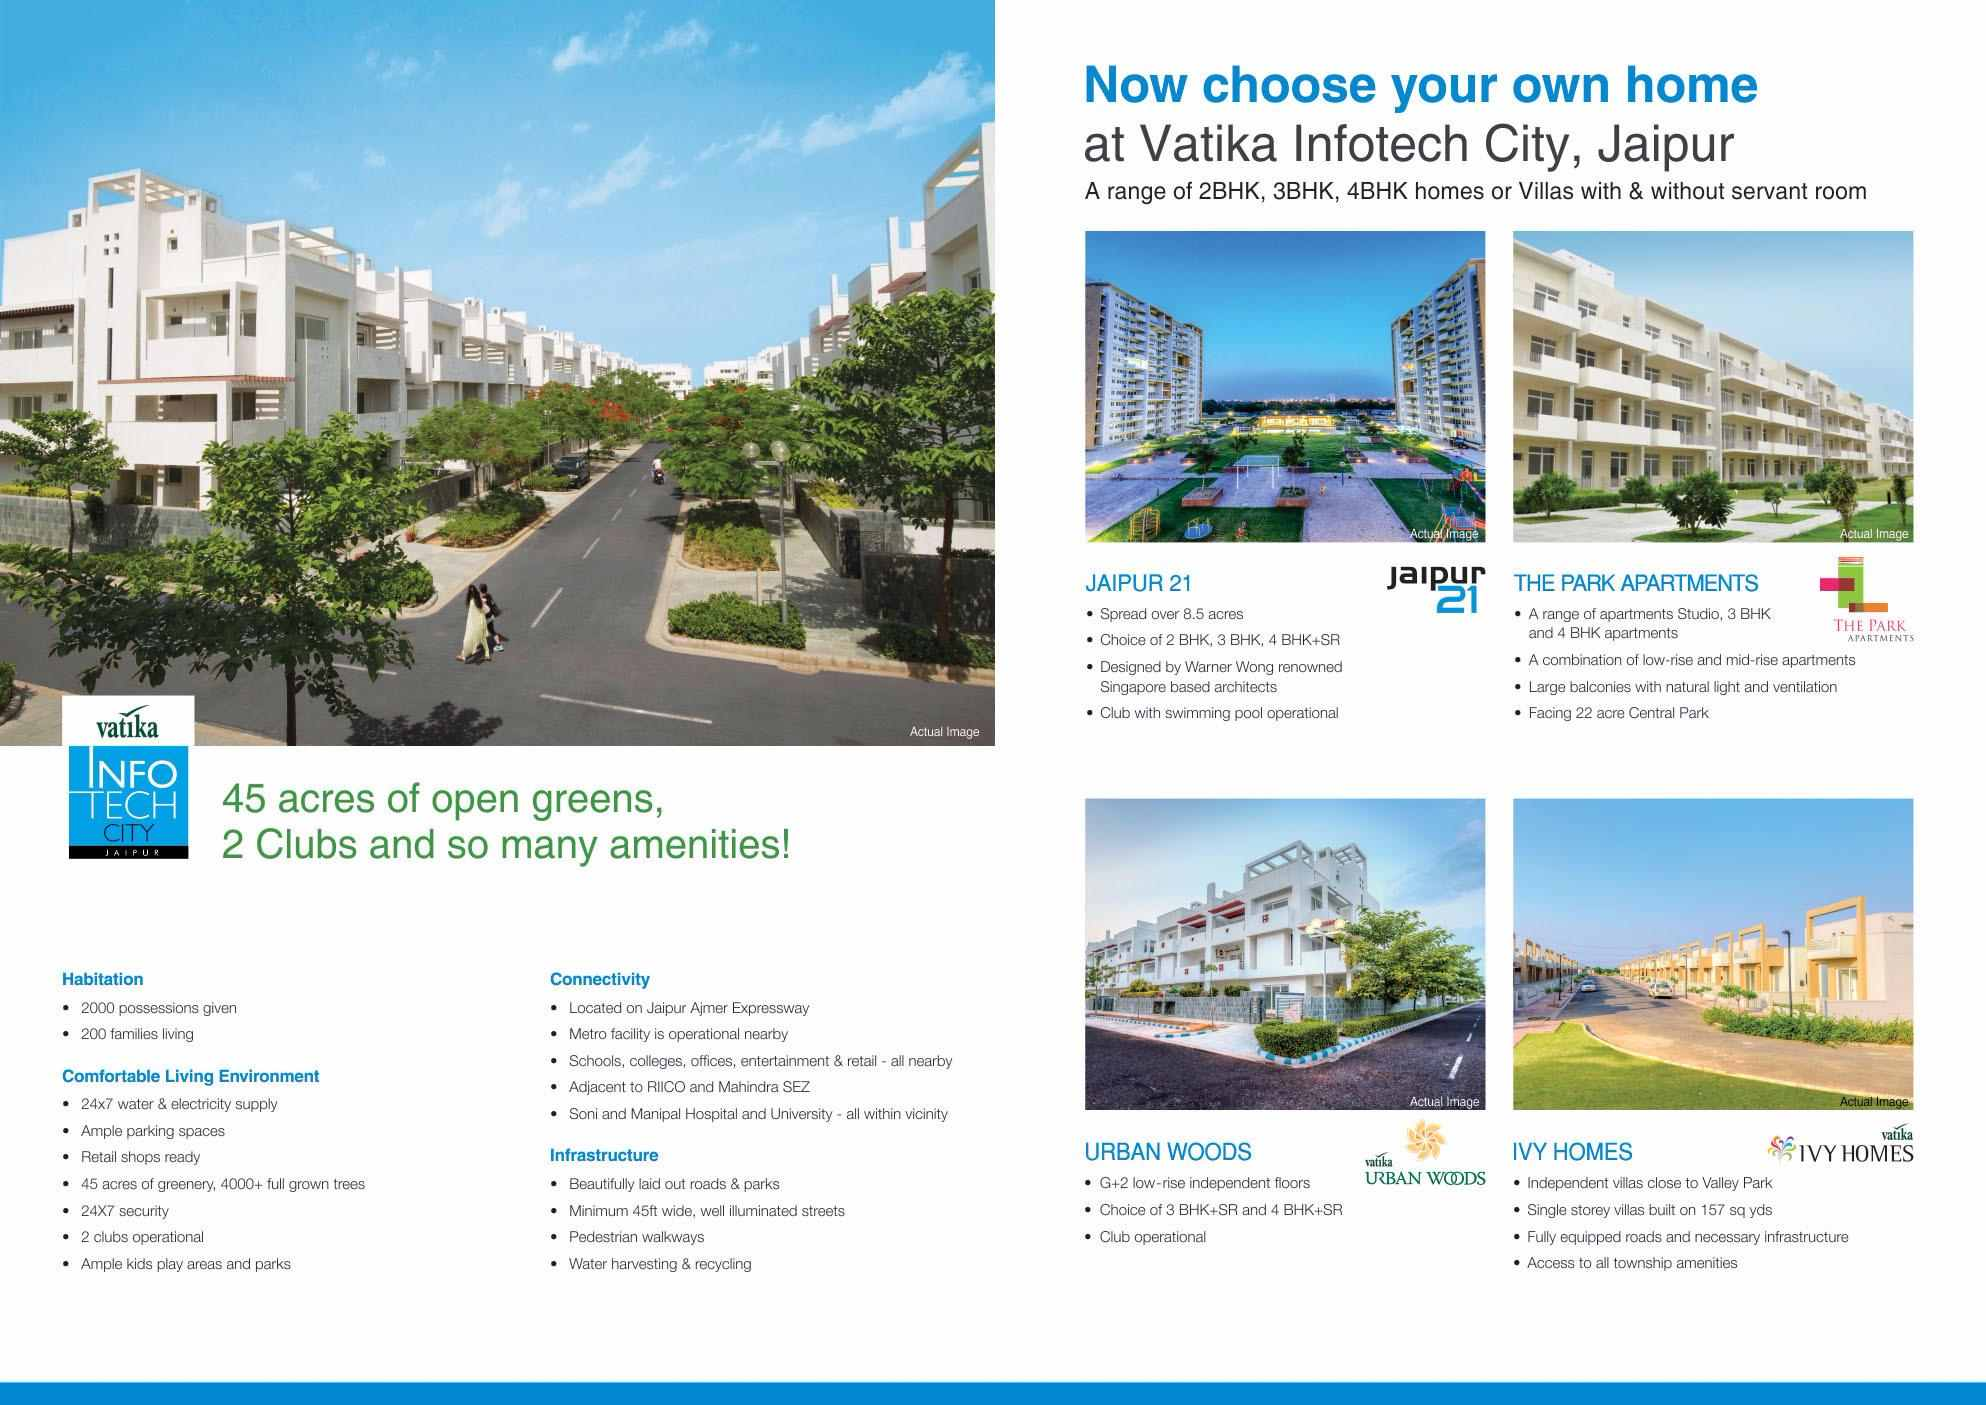 Now Choose Your Own Home At Vatika Infotech City In Jaipur